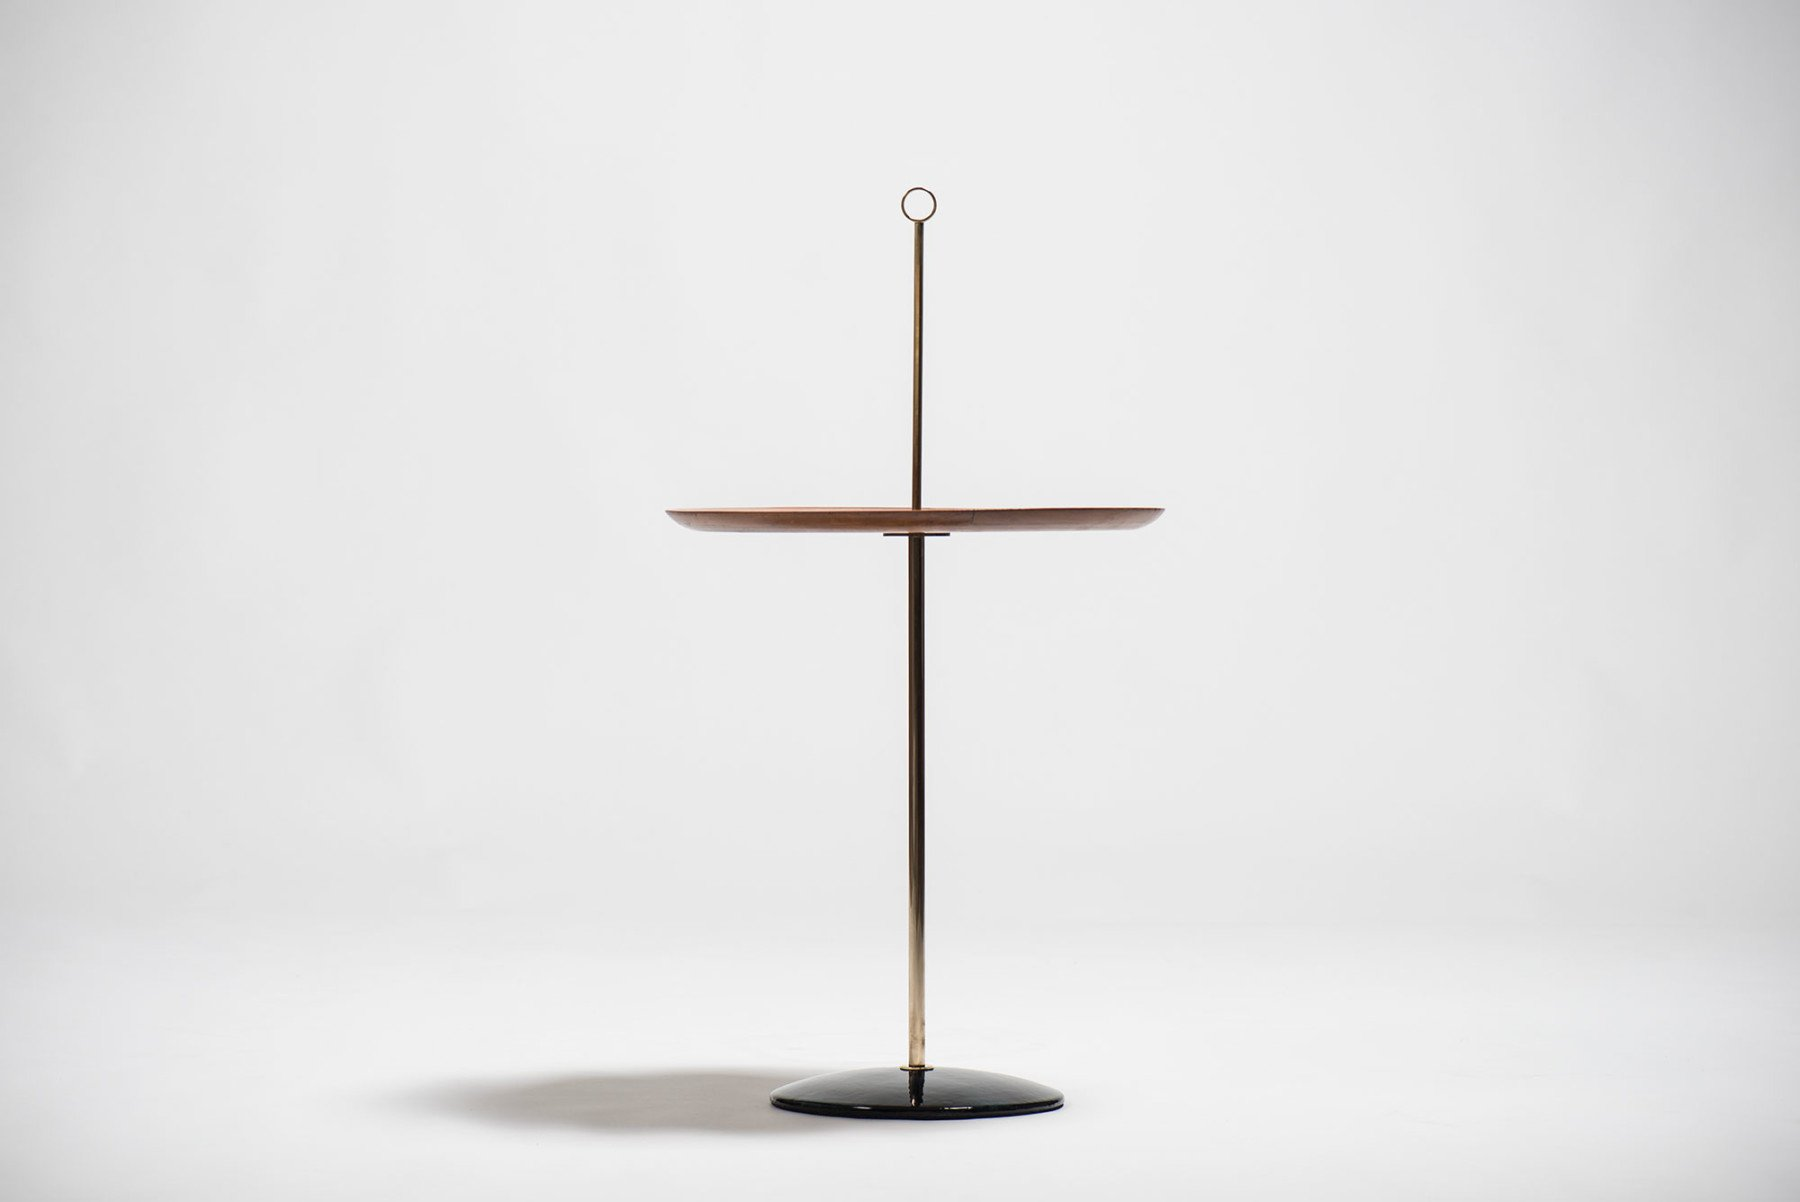 Giovani (Nino) Zoncada  |   Occasional table, model AZ 1001